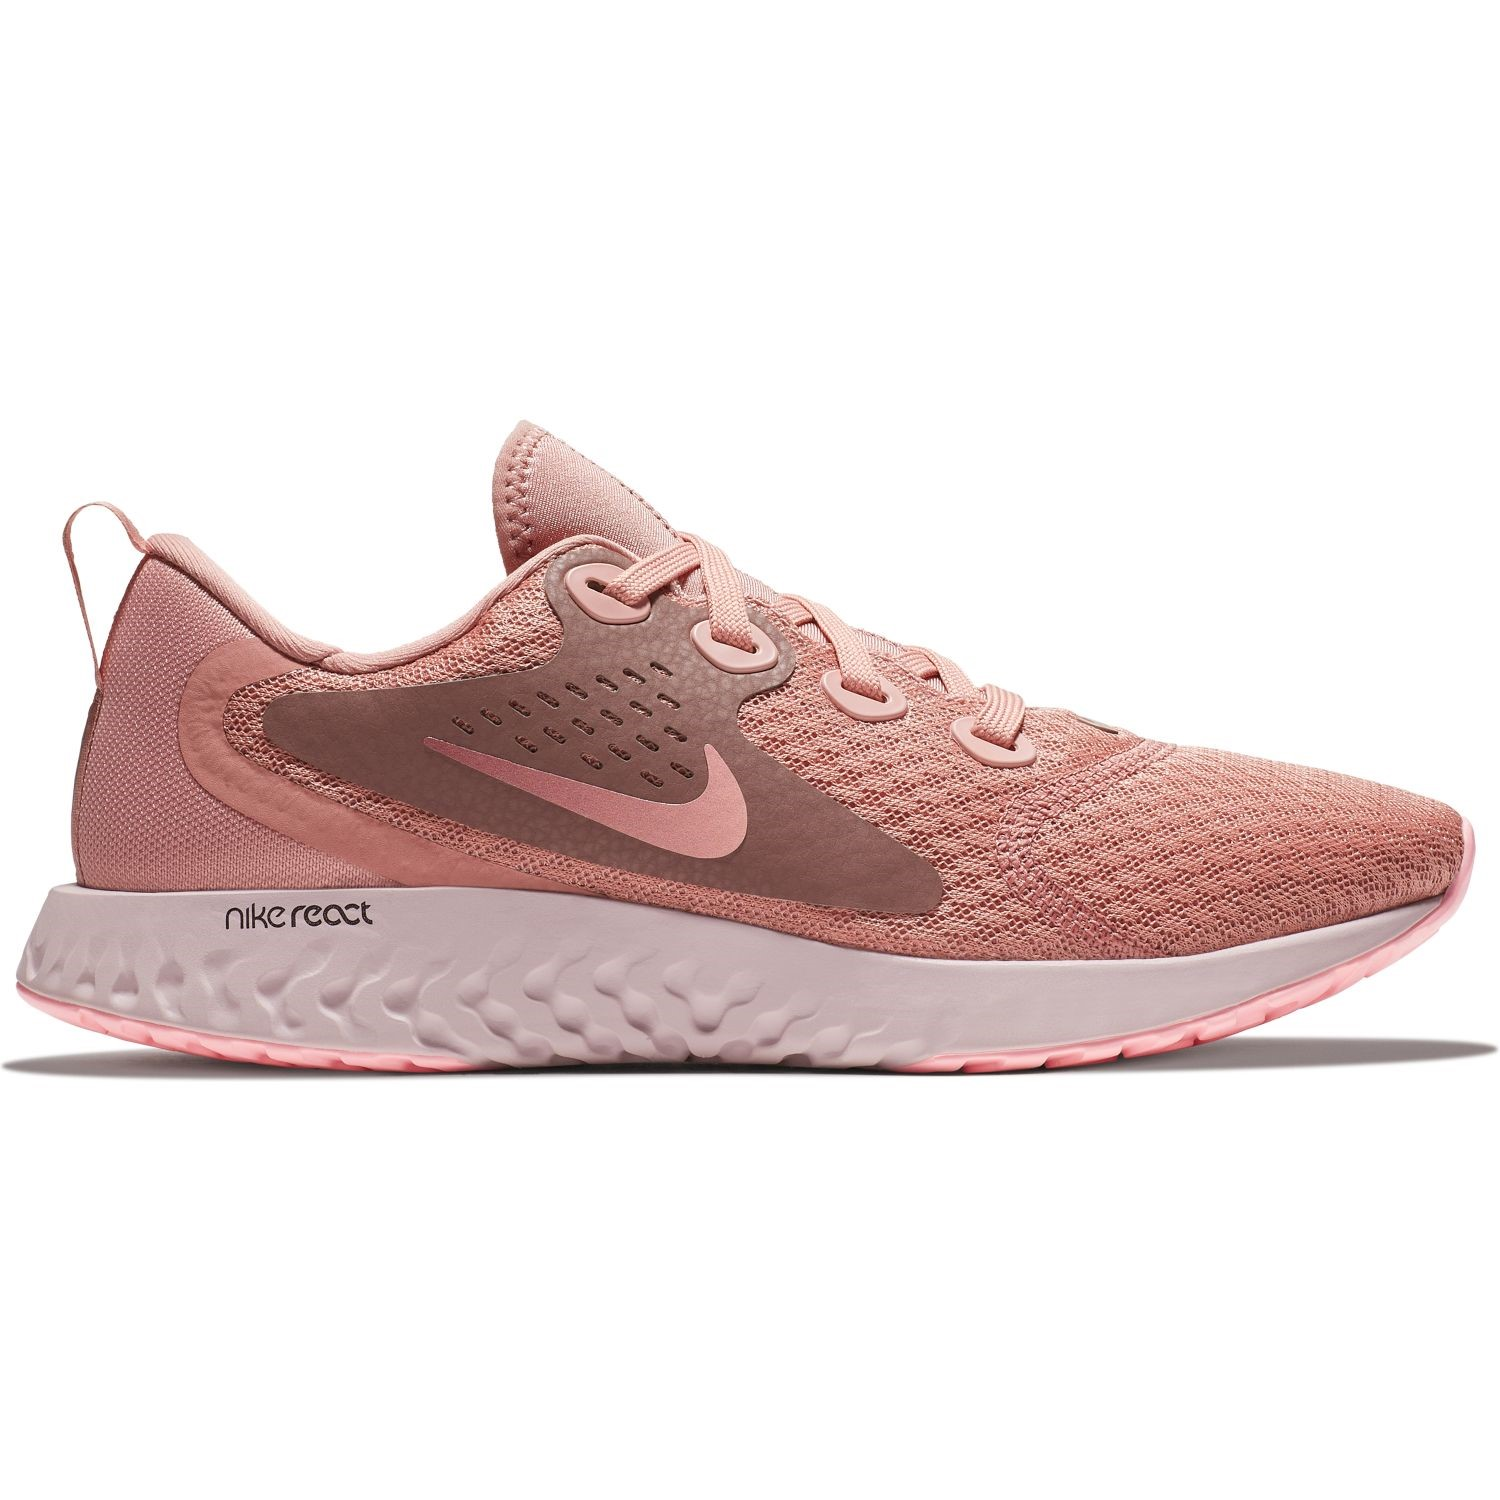 super popular 0b634 6da49 Nike Legend React - Womens Running Shoes - Rust Pink Smokey Mauve Sail